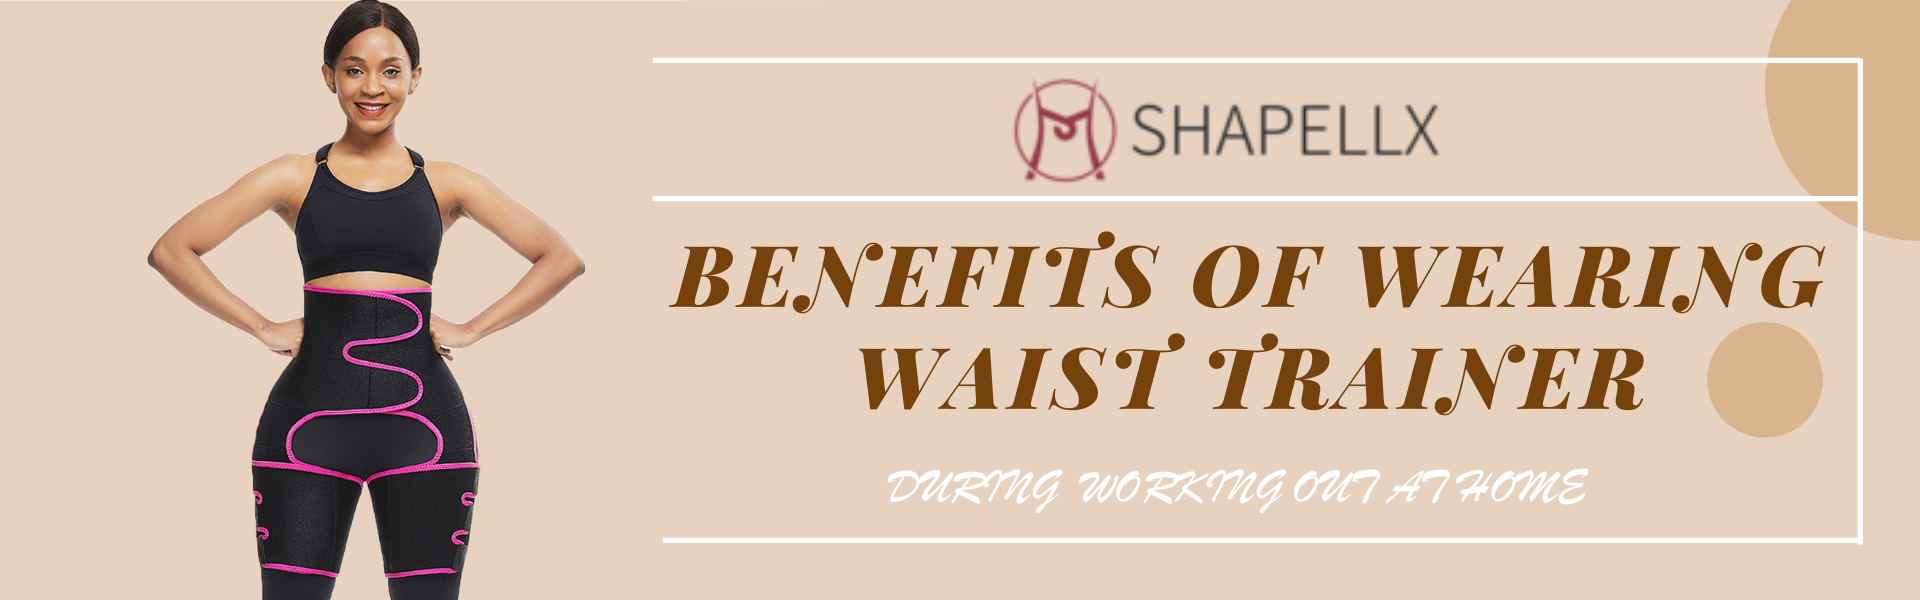 Benefits of Wearing Waist and Thigh Trimmer While Working Out